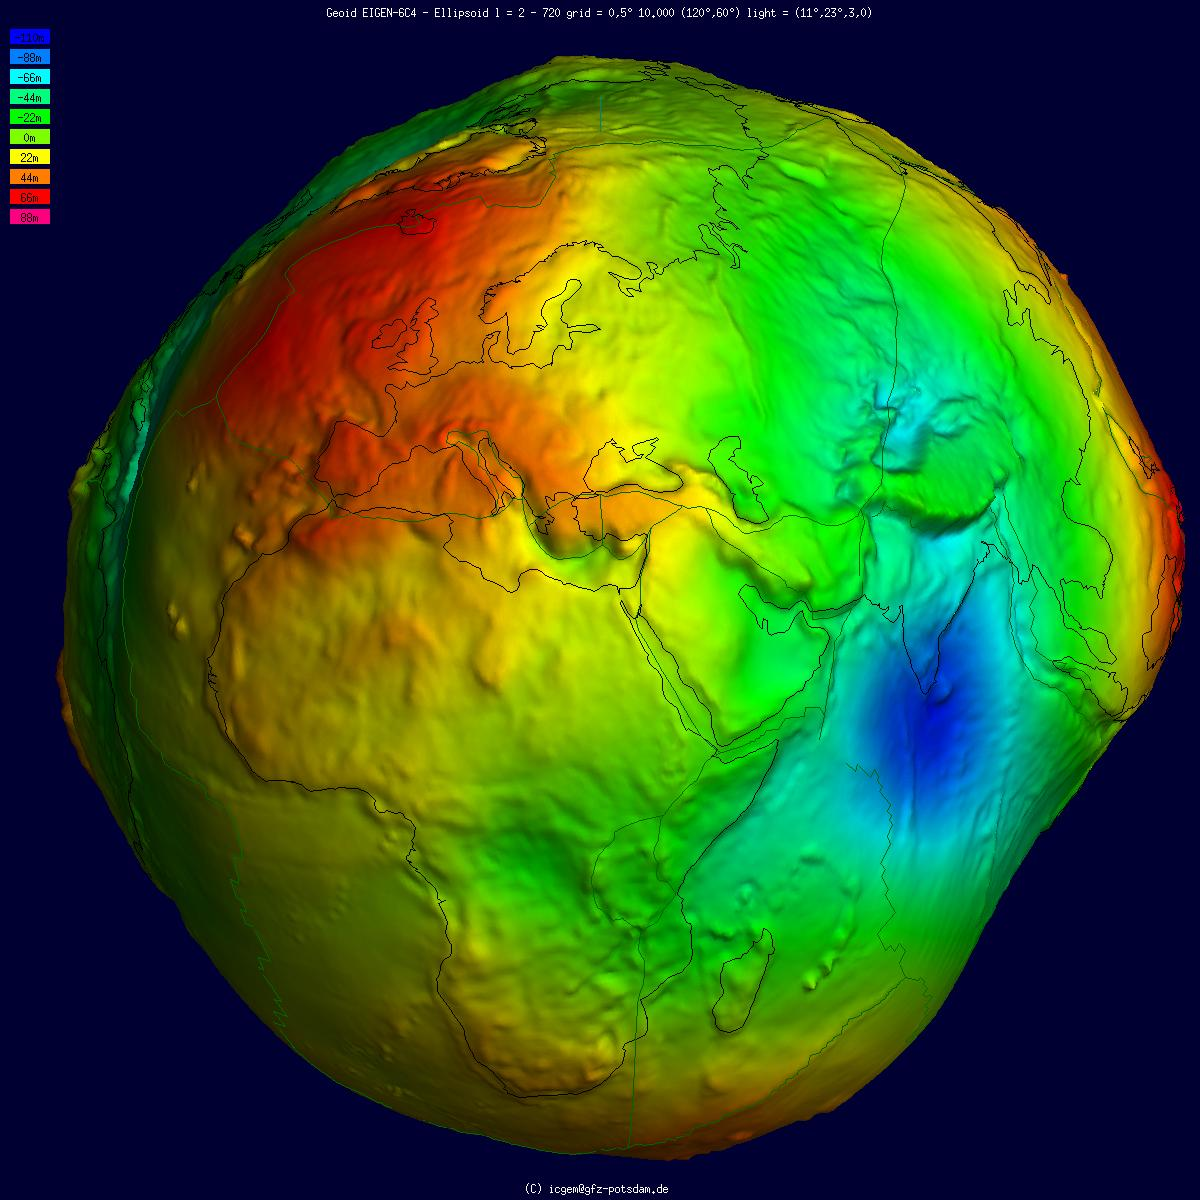 Geoid model of Earth